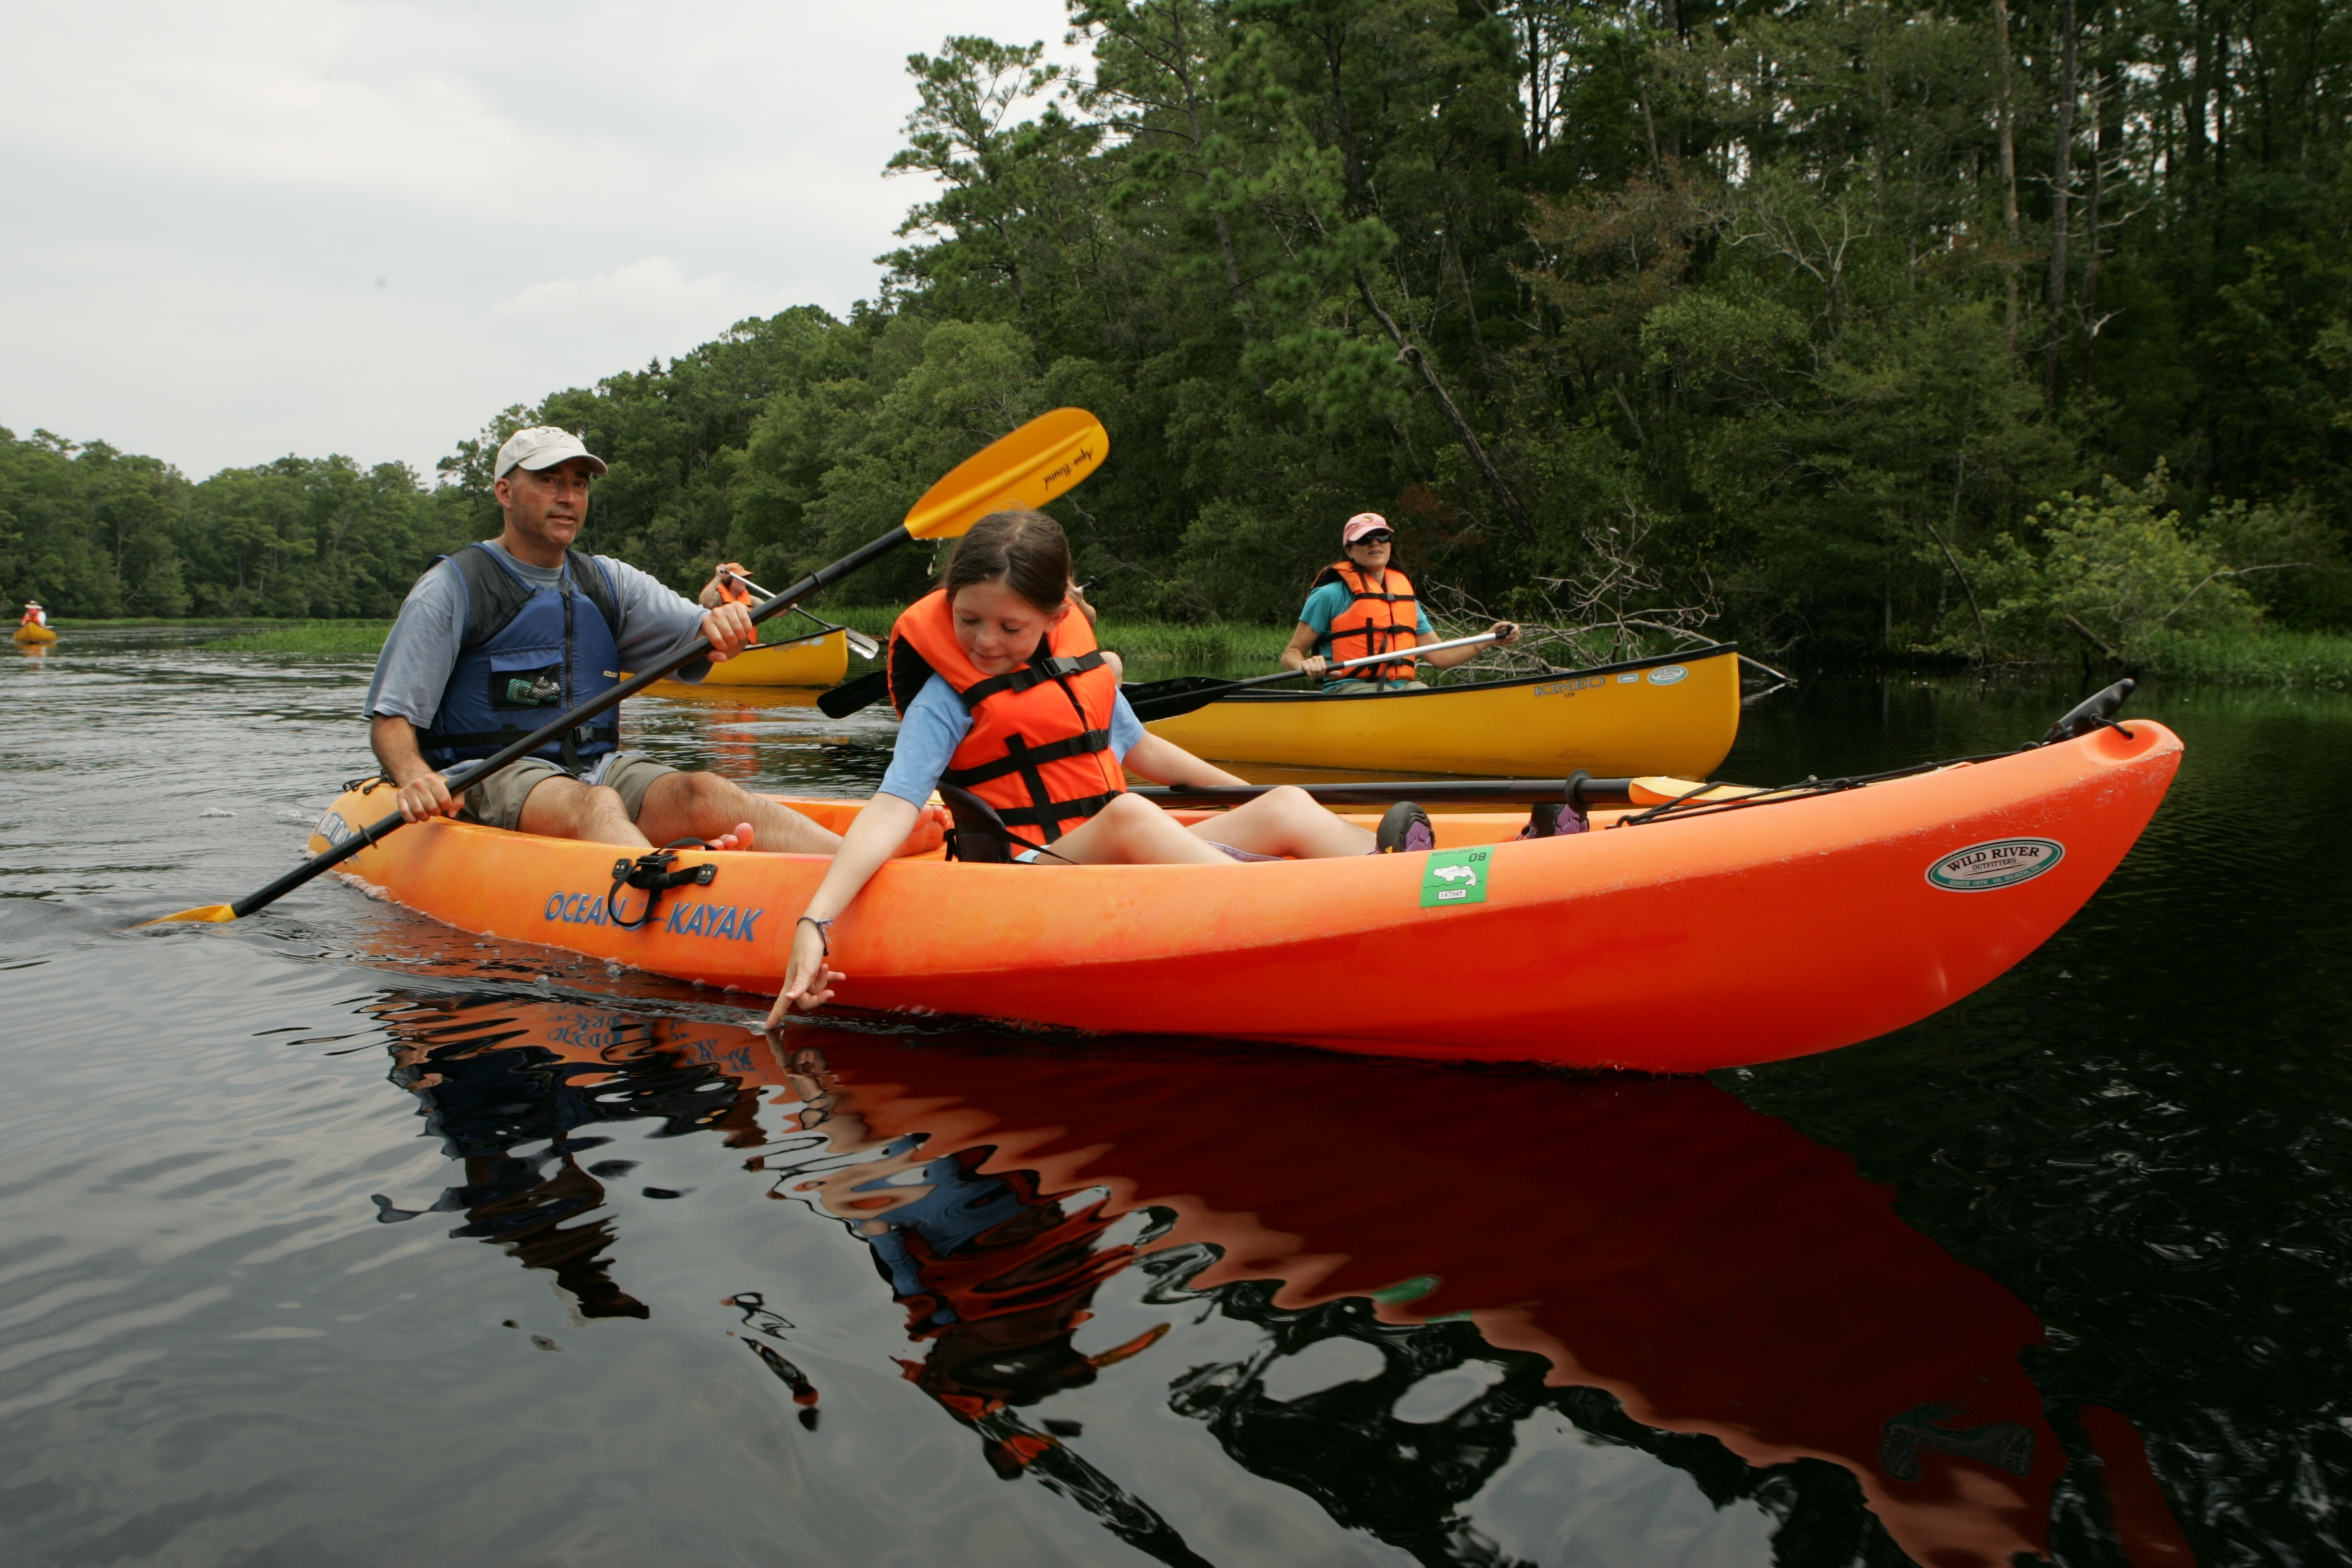 Canoeing in the river photo